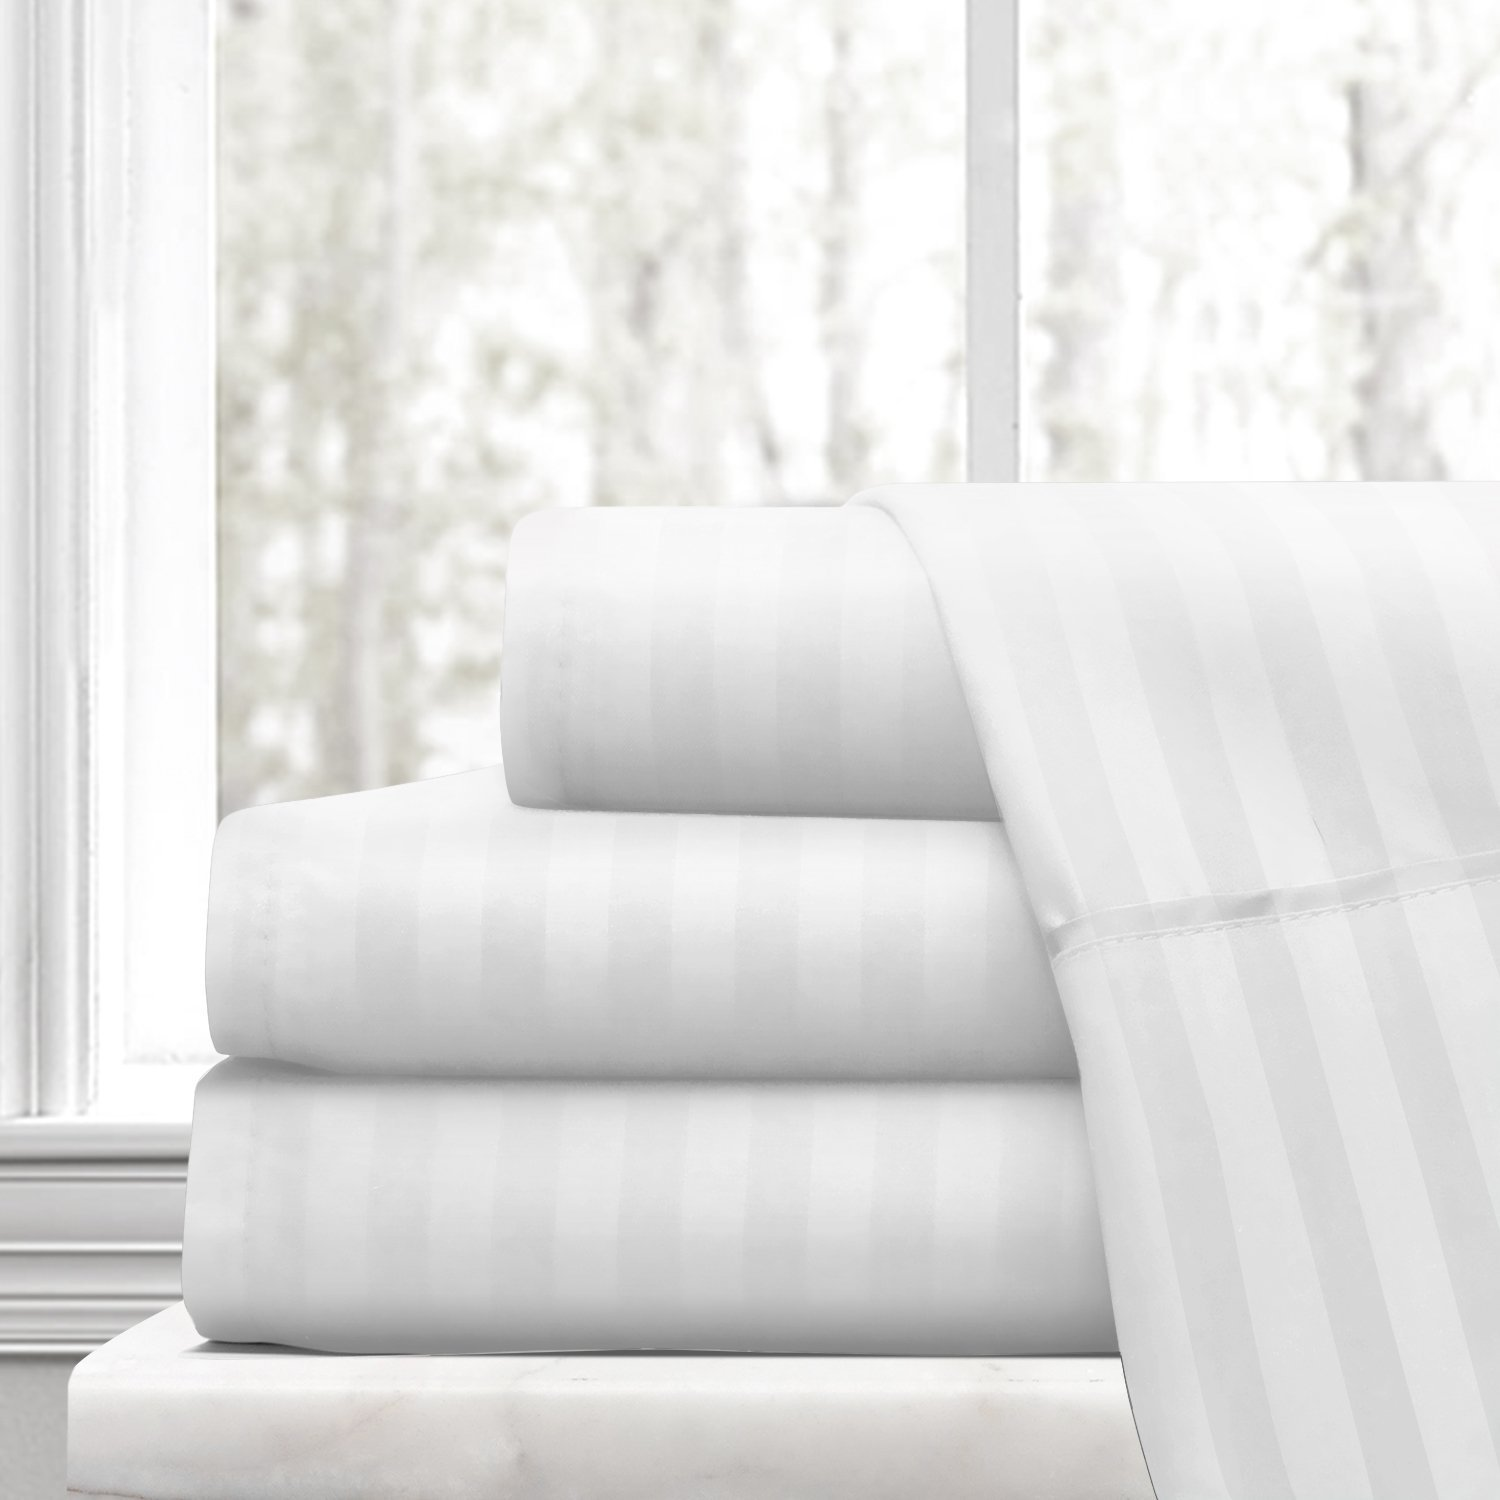 Beckham Hotel Collection Luxury Soft Brushed Microfiber 4-Piece Striped Sheet Set - Hypoallergenic & Stain Resistant with Embossed Stripes - Full - White